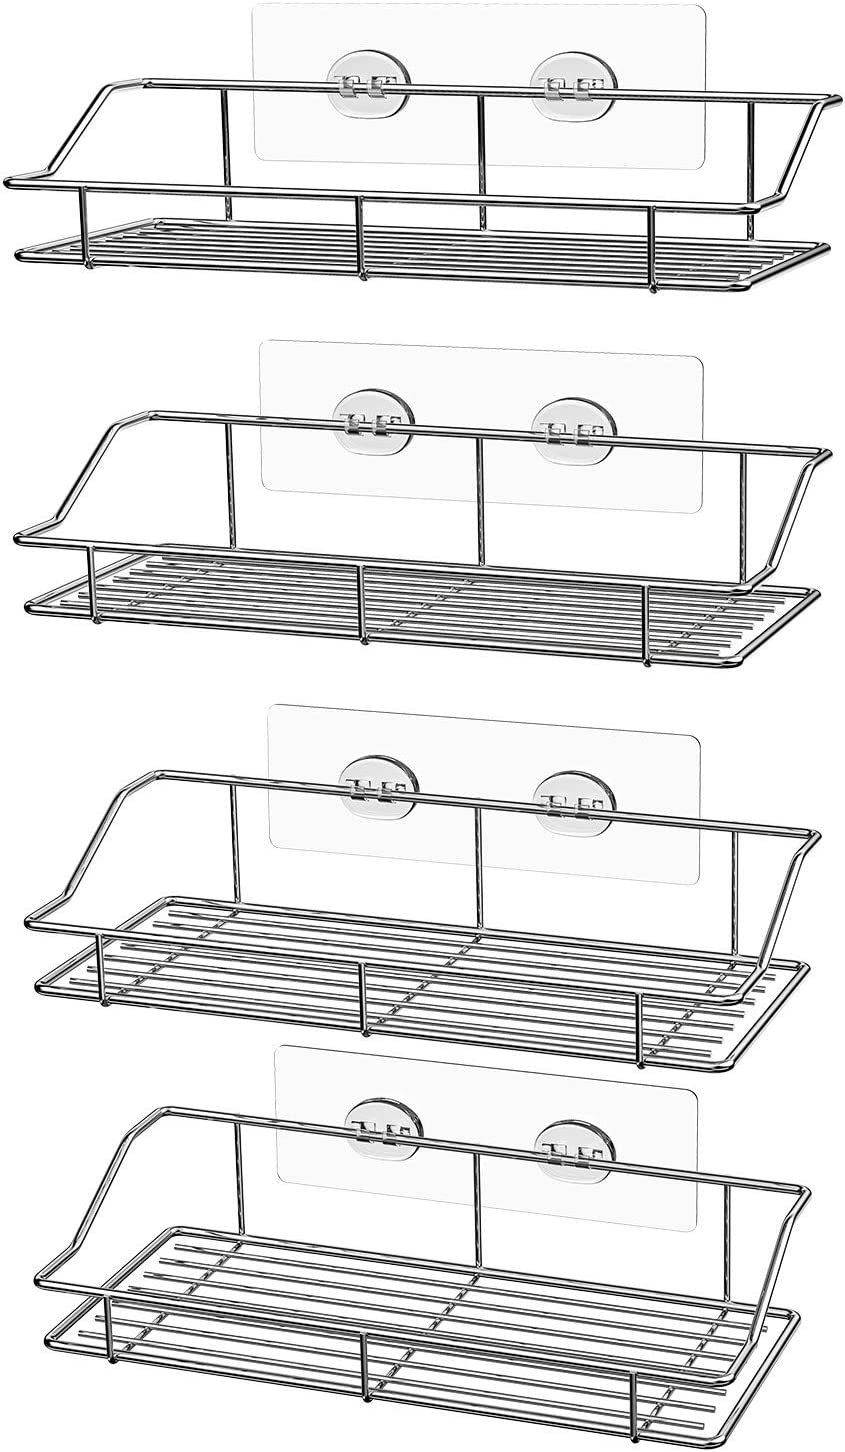 SMARTAKE 4-Pack Shower Caddy, Adhesive Bathroom Shelf Wall Mounted, No Drilling Strong Shower Caddies Kitchen Racks - Stainless Steel Storage Organizers (9.9 Inches), Silver